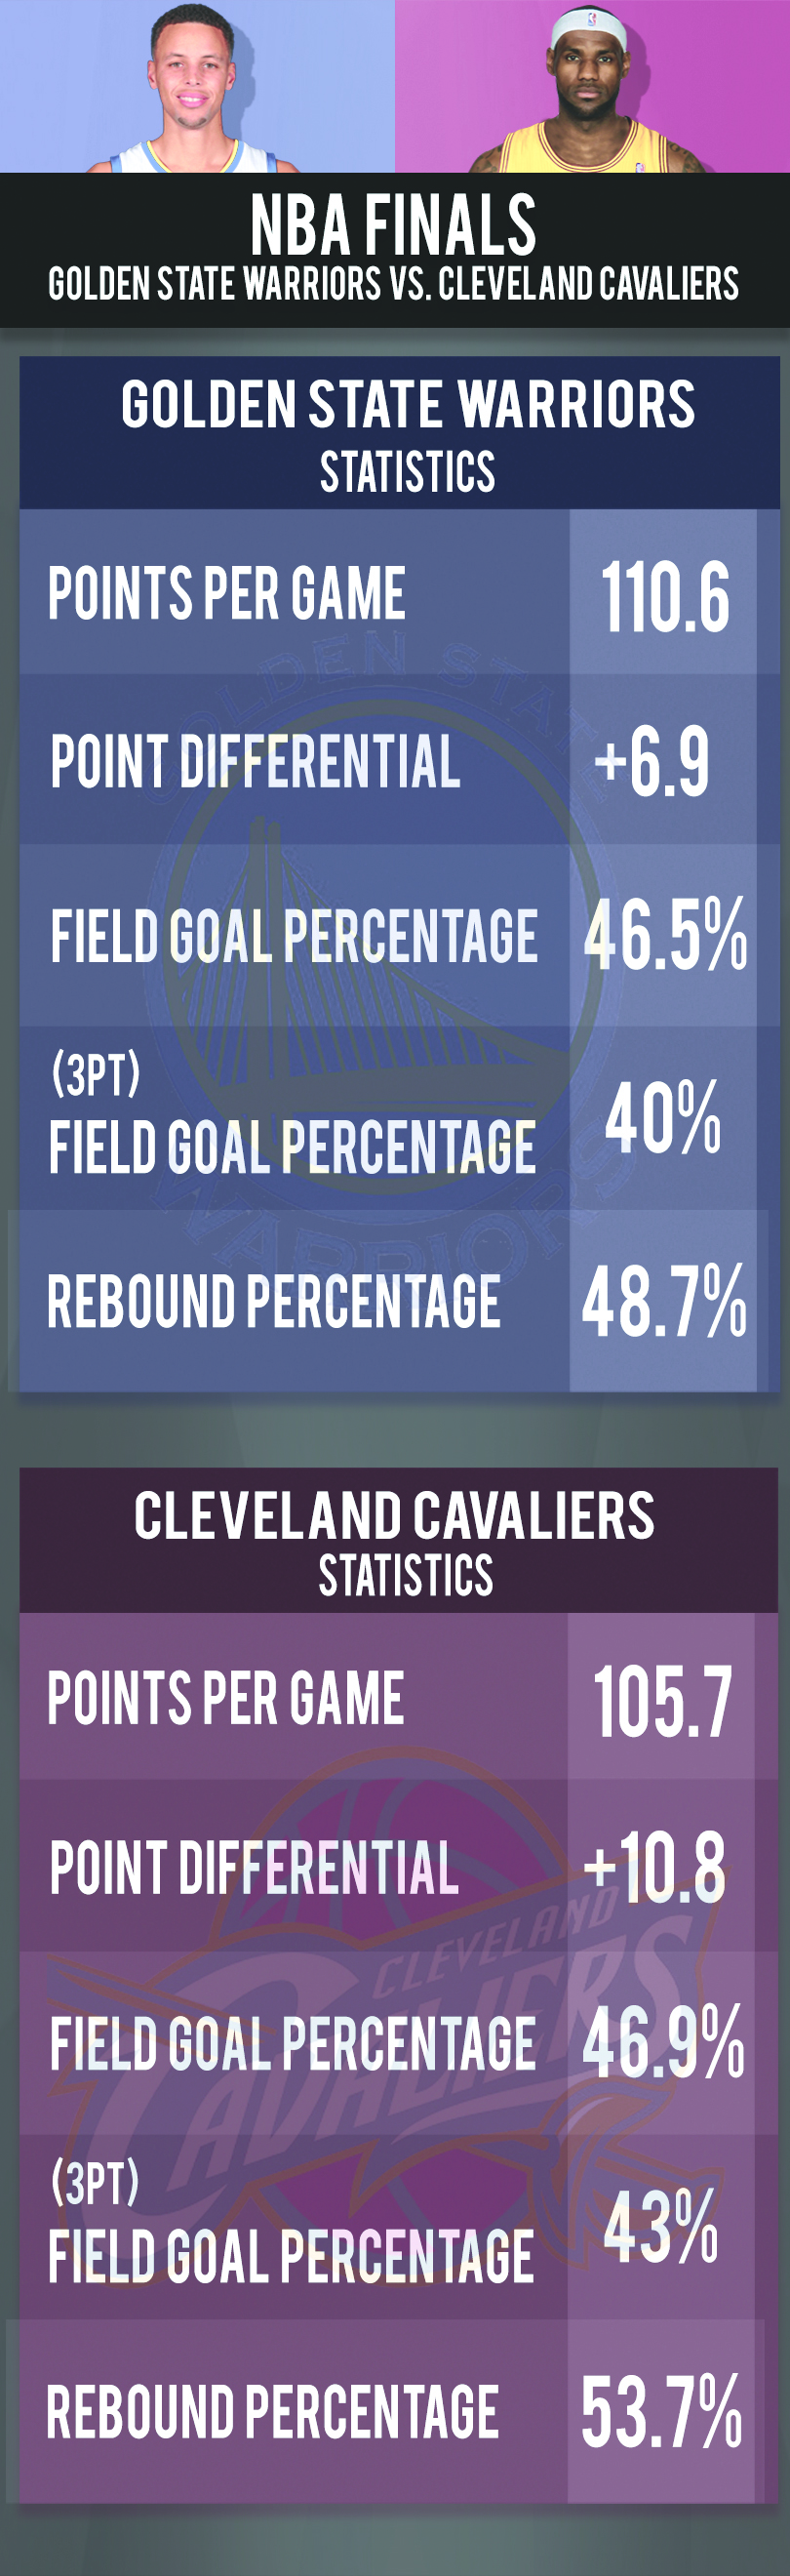 NBA Finals Guide: Golden State Warriors vs. Cleveland Cavaliers